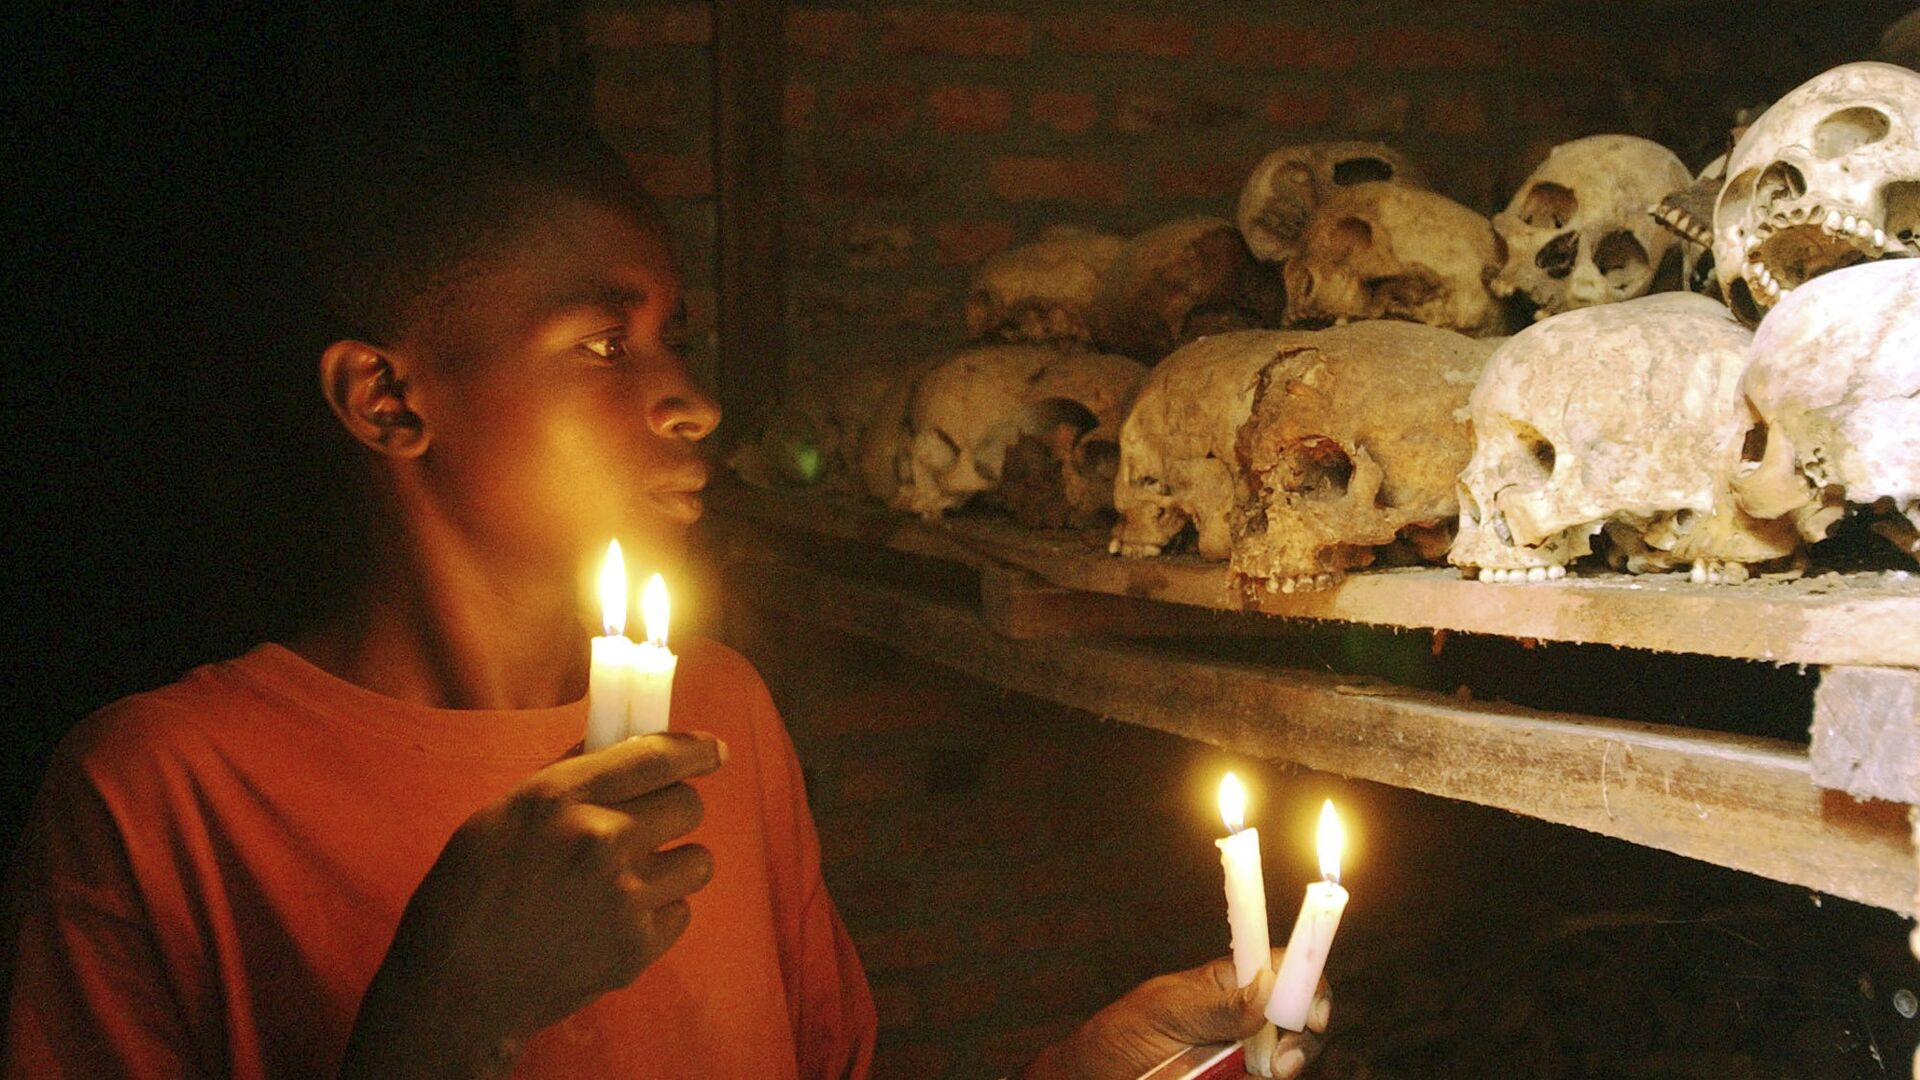 FILE - In this April 6, 2004 file photo, Apollan Odetta, a survivor from the 1994 Rwandan Genocide light candles at a mass grave in Nyamata, Rwanda - Sputnik International, 1920, 20.09.2021